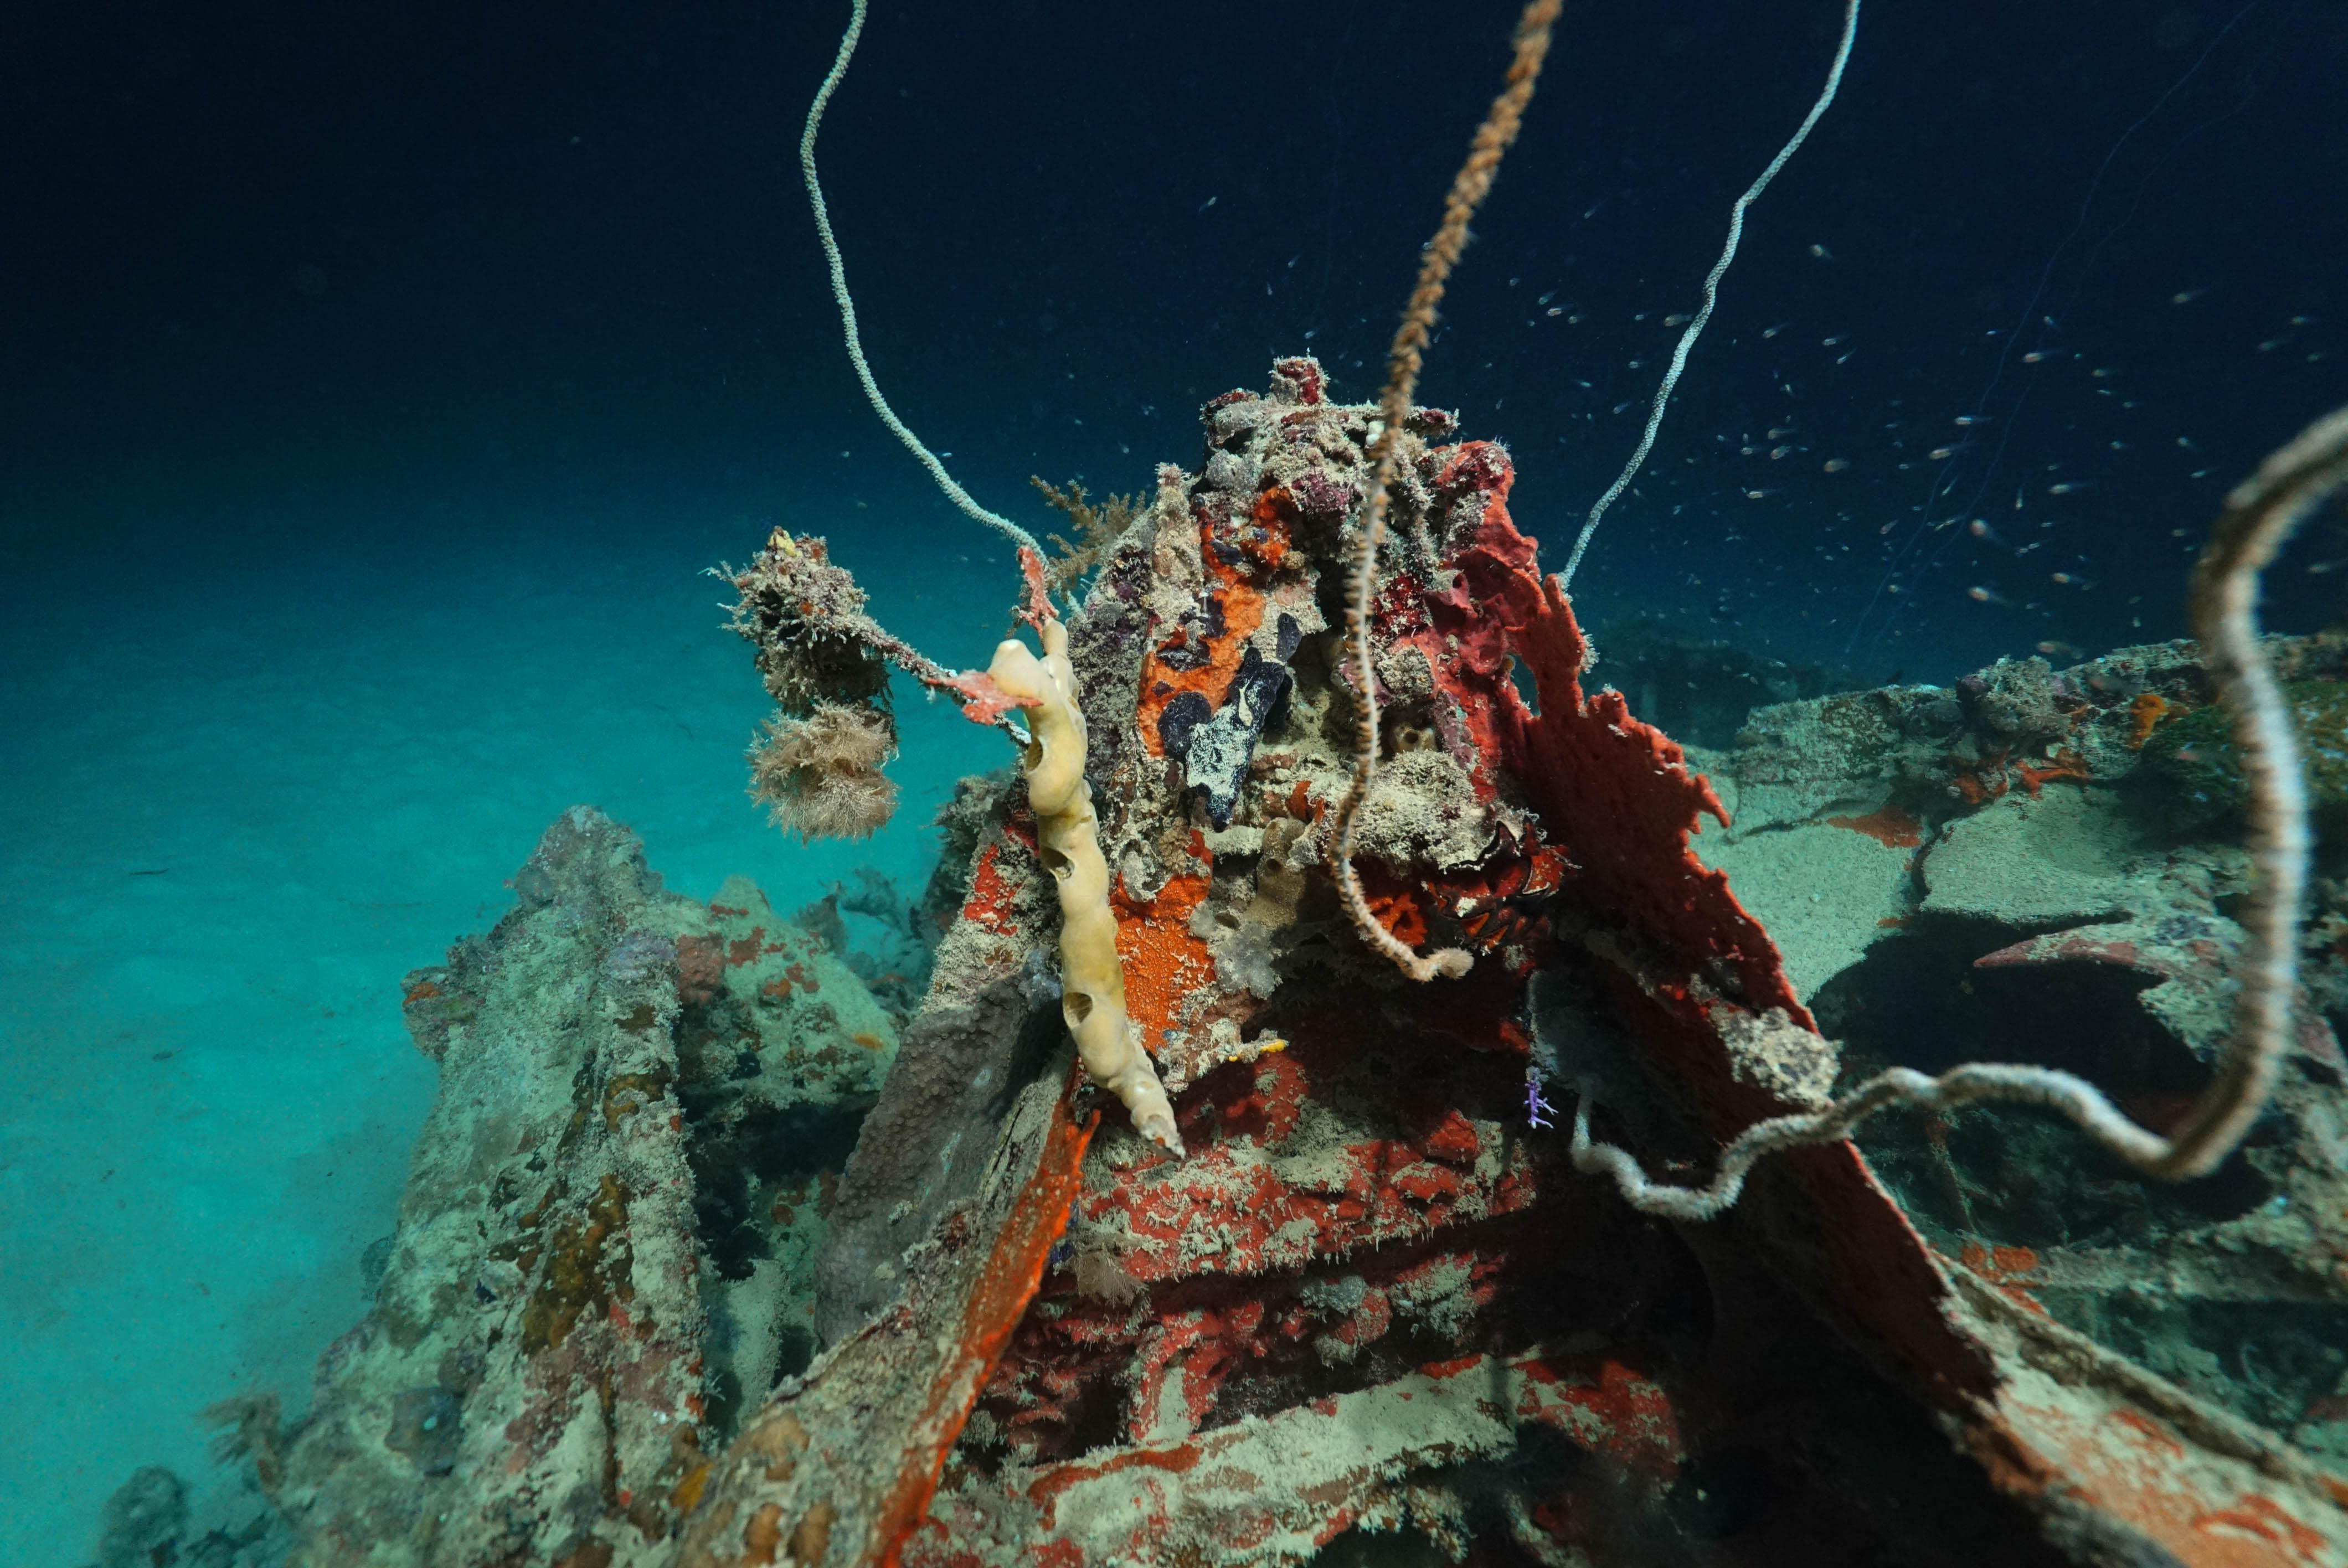 The remains of the missing Grumman TBM-1C Avenger. Photo Courtesy of Scripps Institution of Oceanography